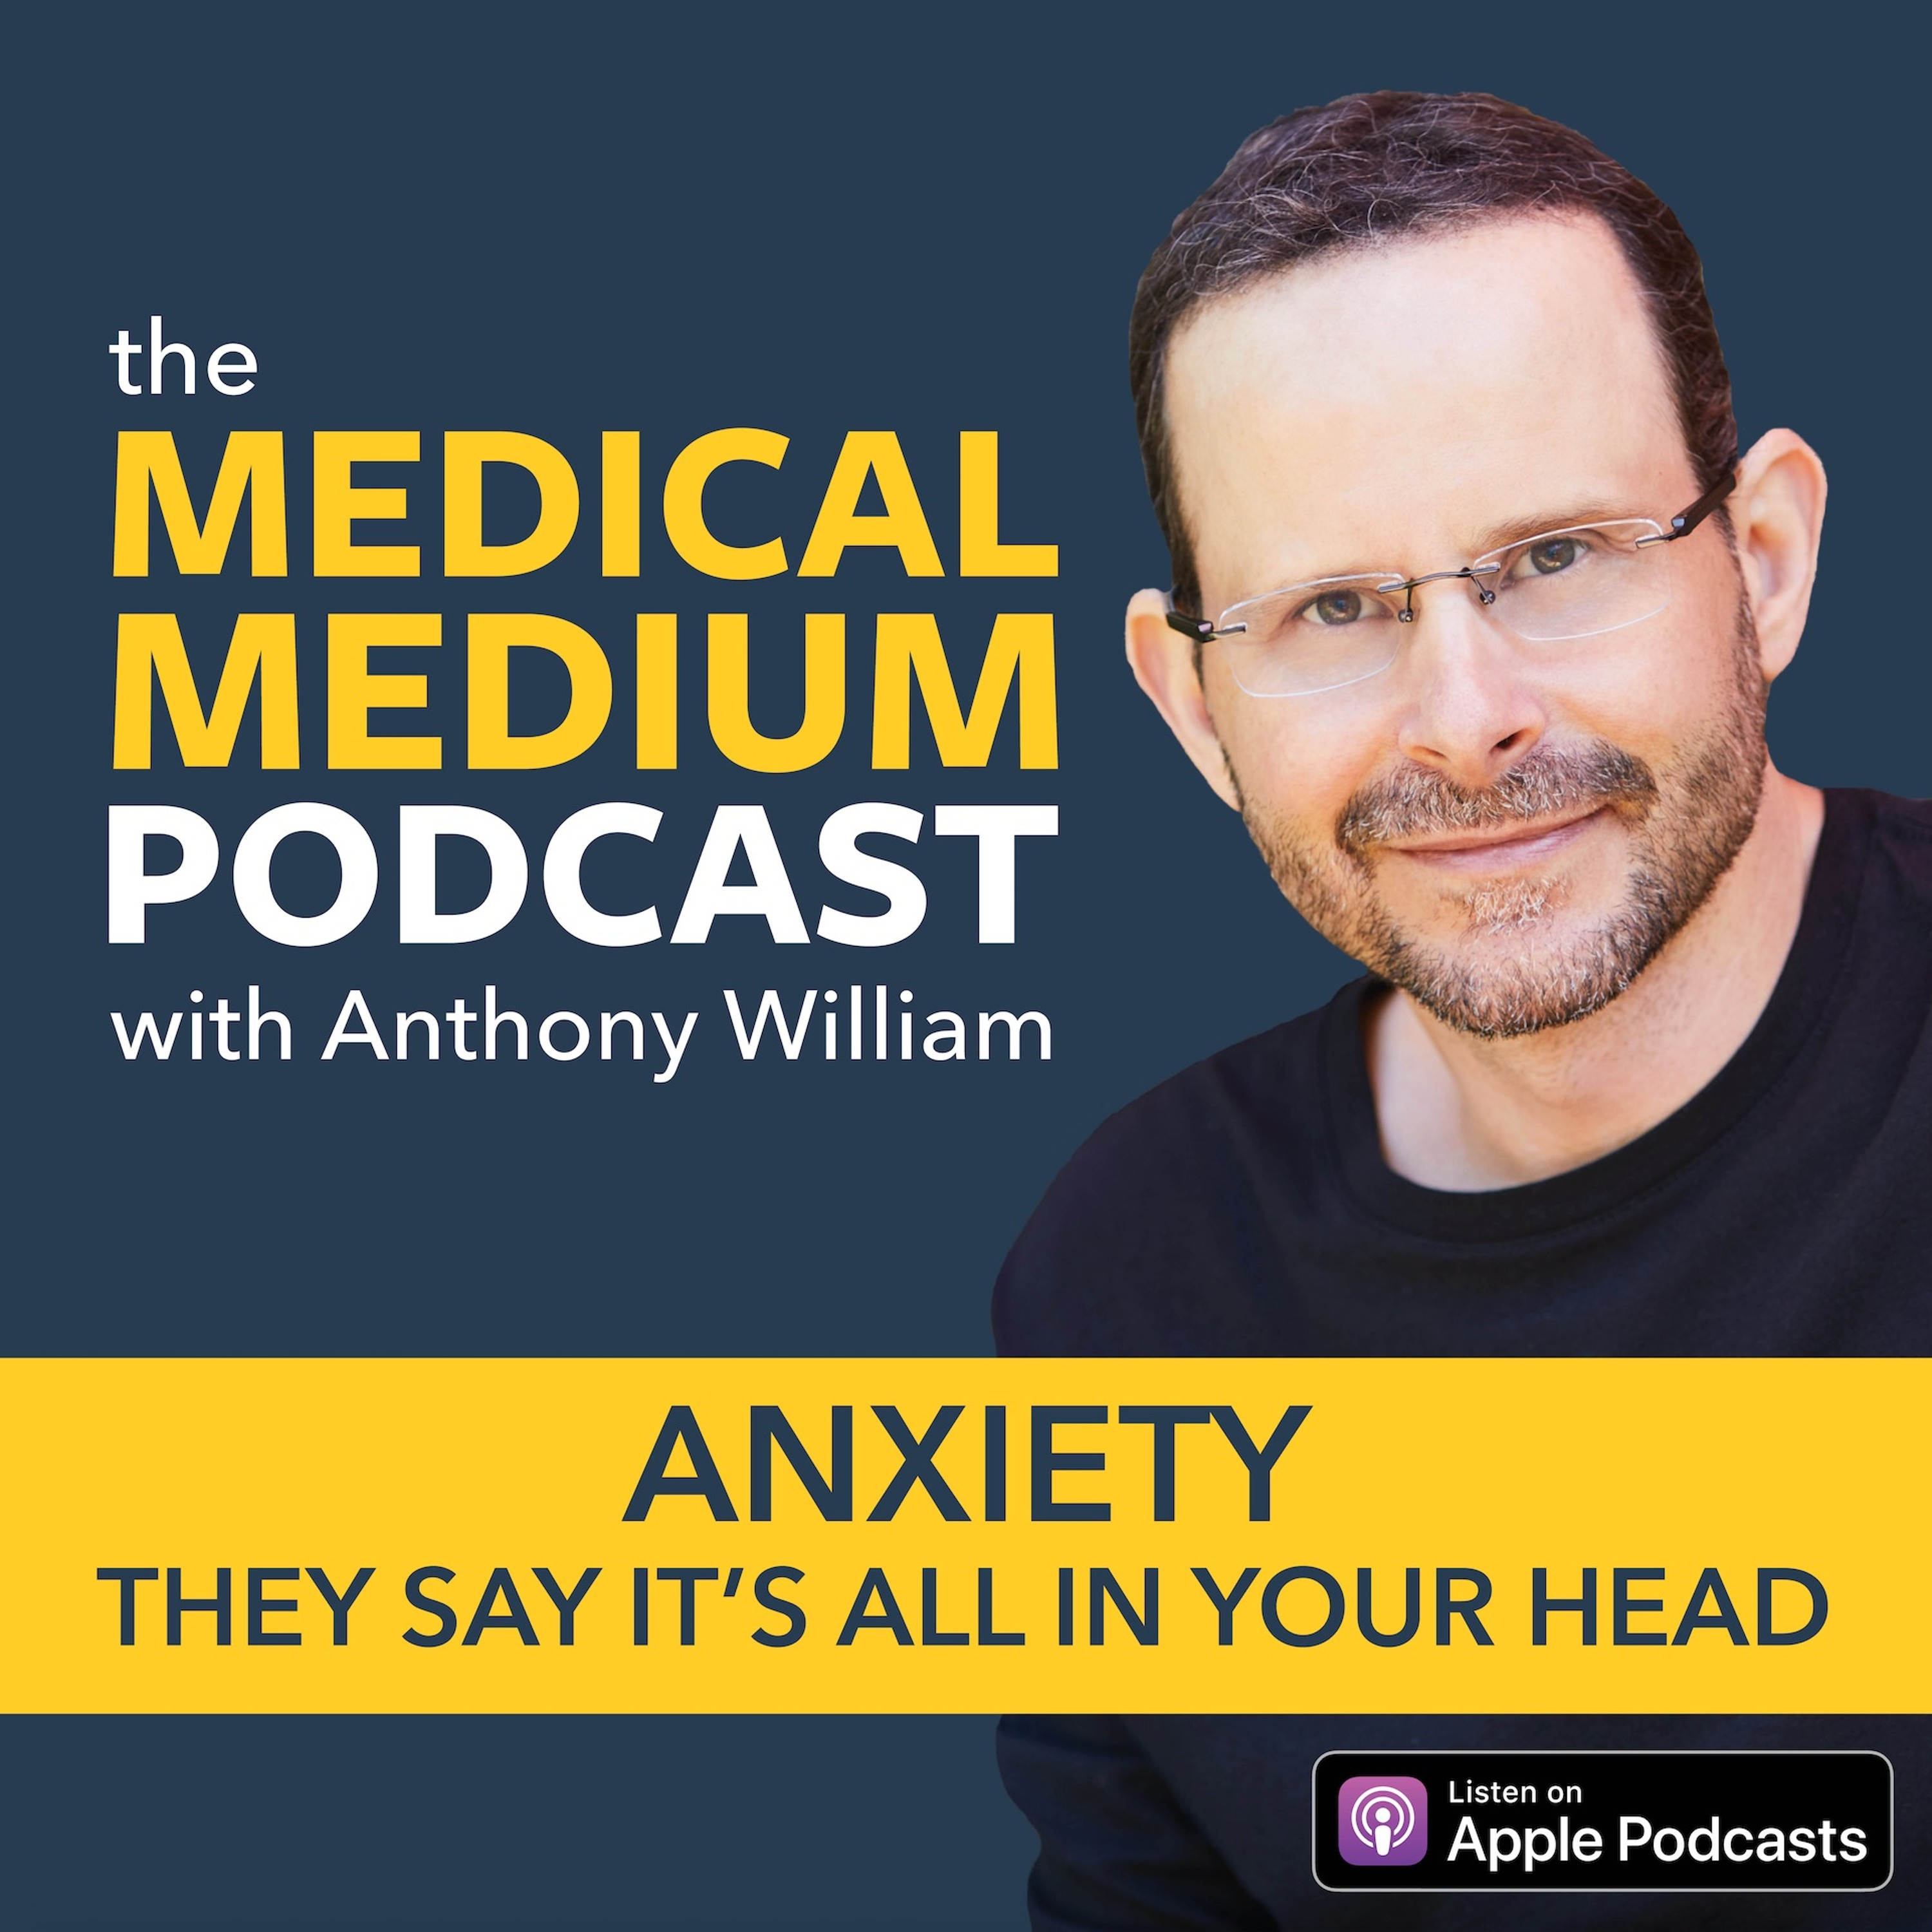 014 Anxiety: They Say It's All In Your Head